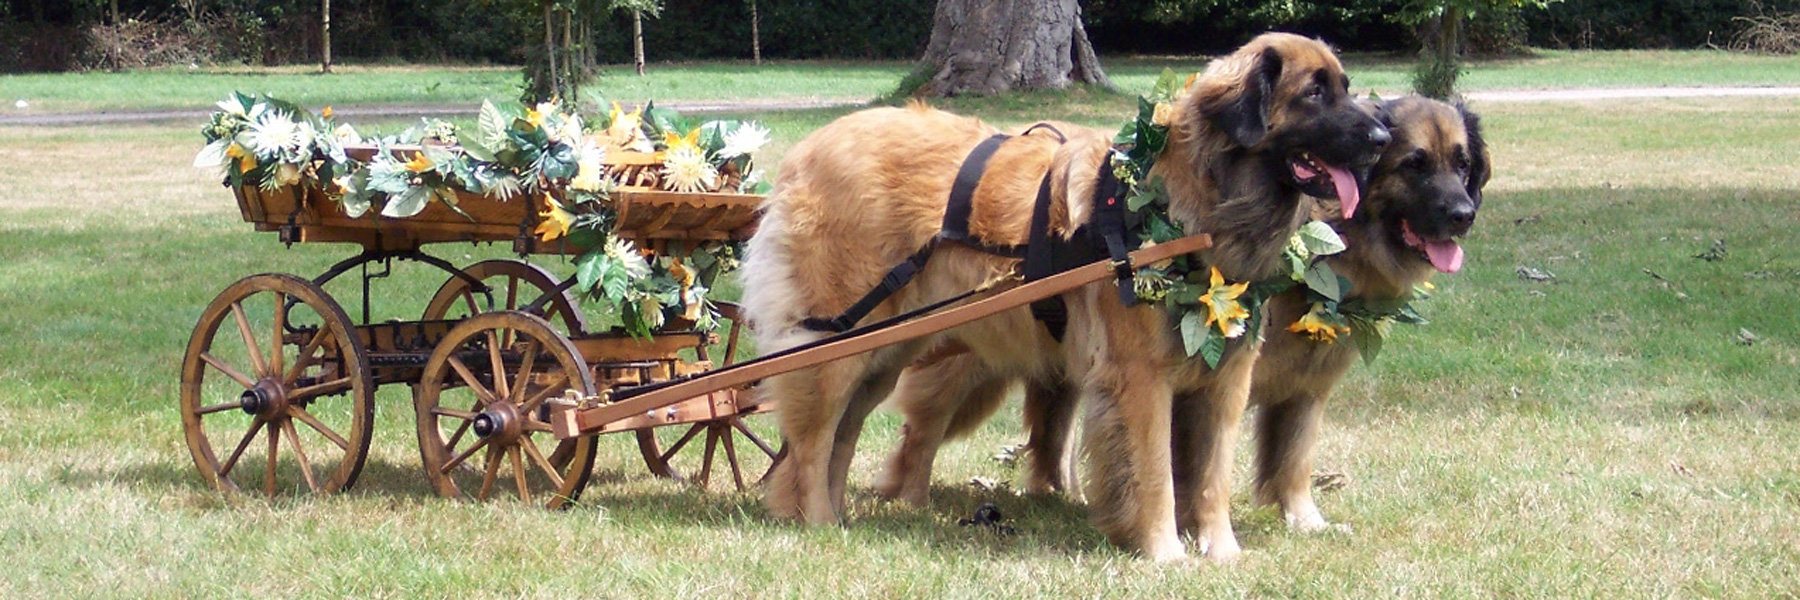 Brace of Leonbergers pulling a decorated cart